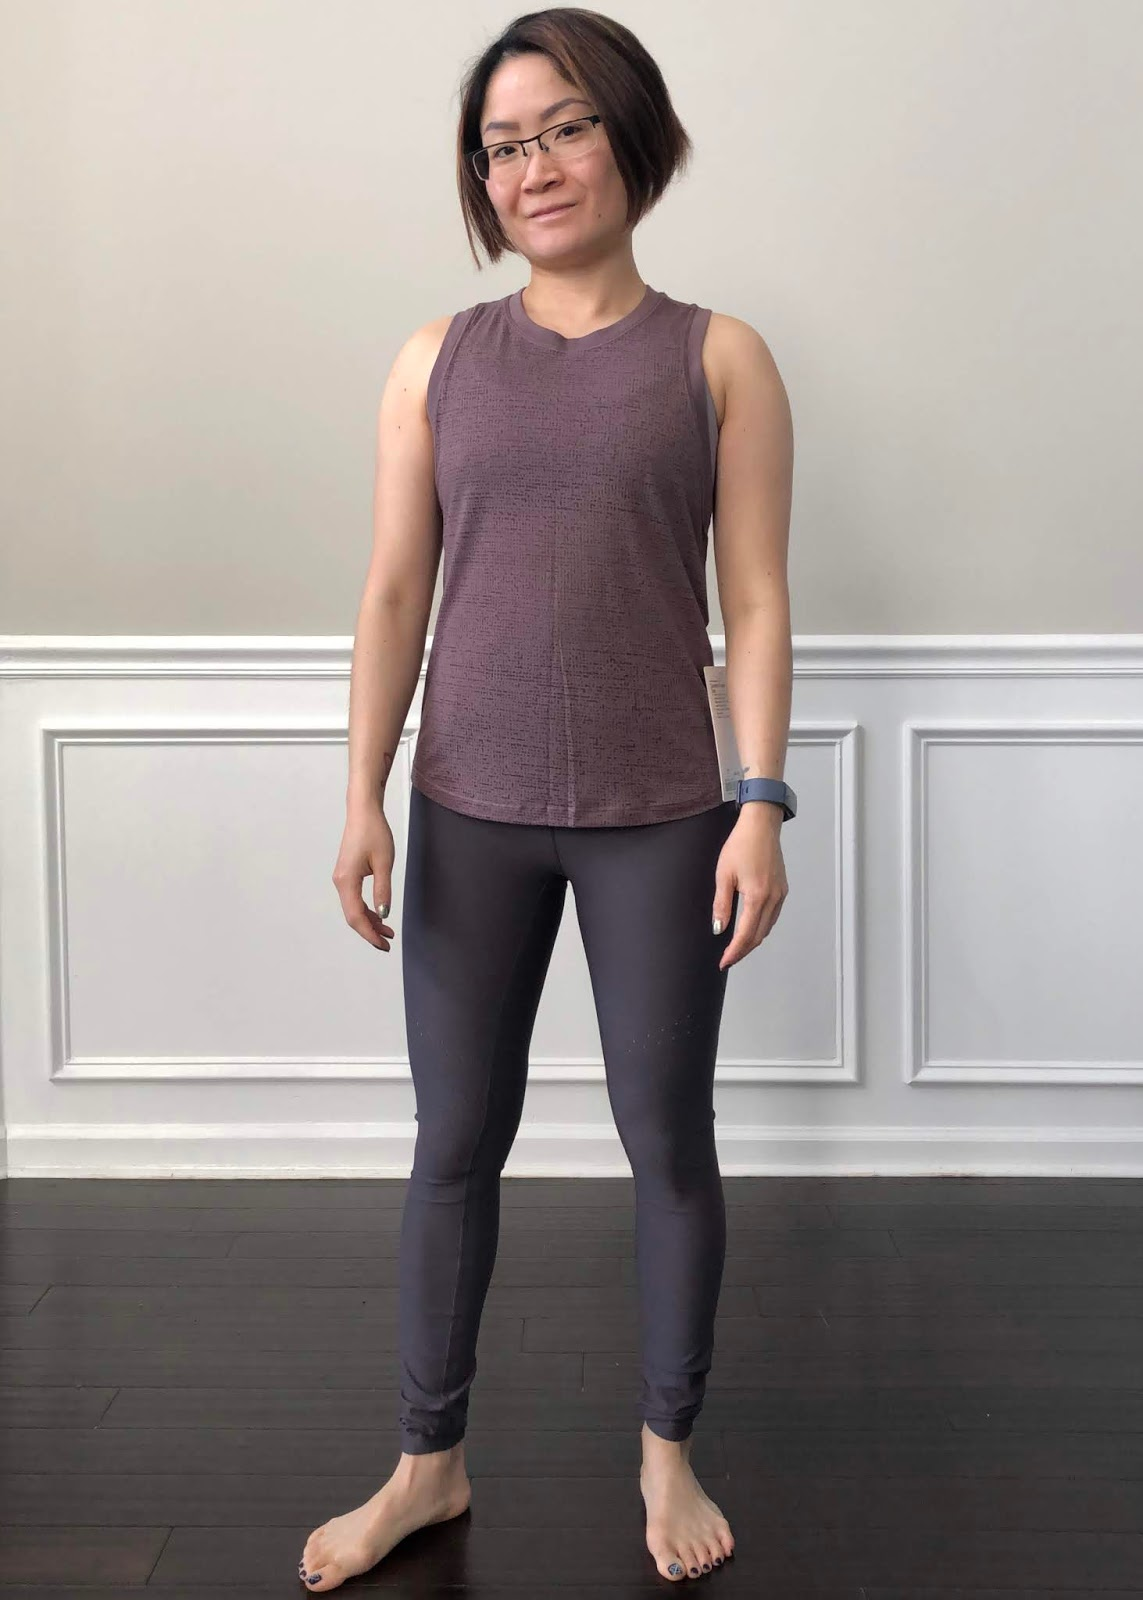 23d4b22e82858a Petite Impact  Fit Review Friday! Zoned In Tight   Timeless Classic Tank